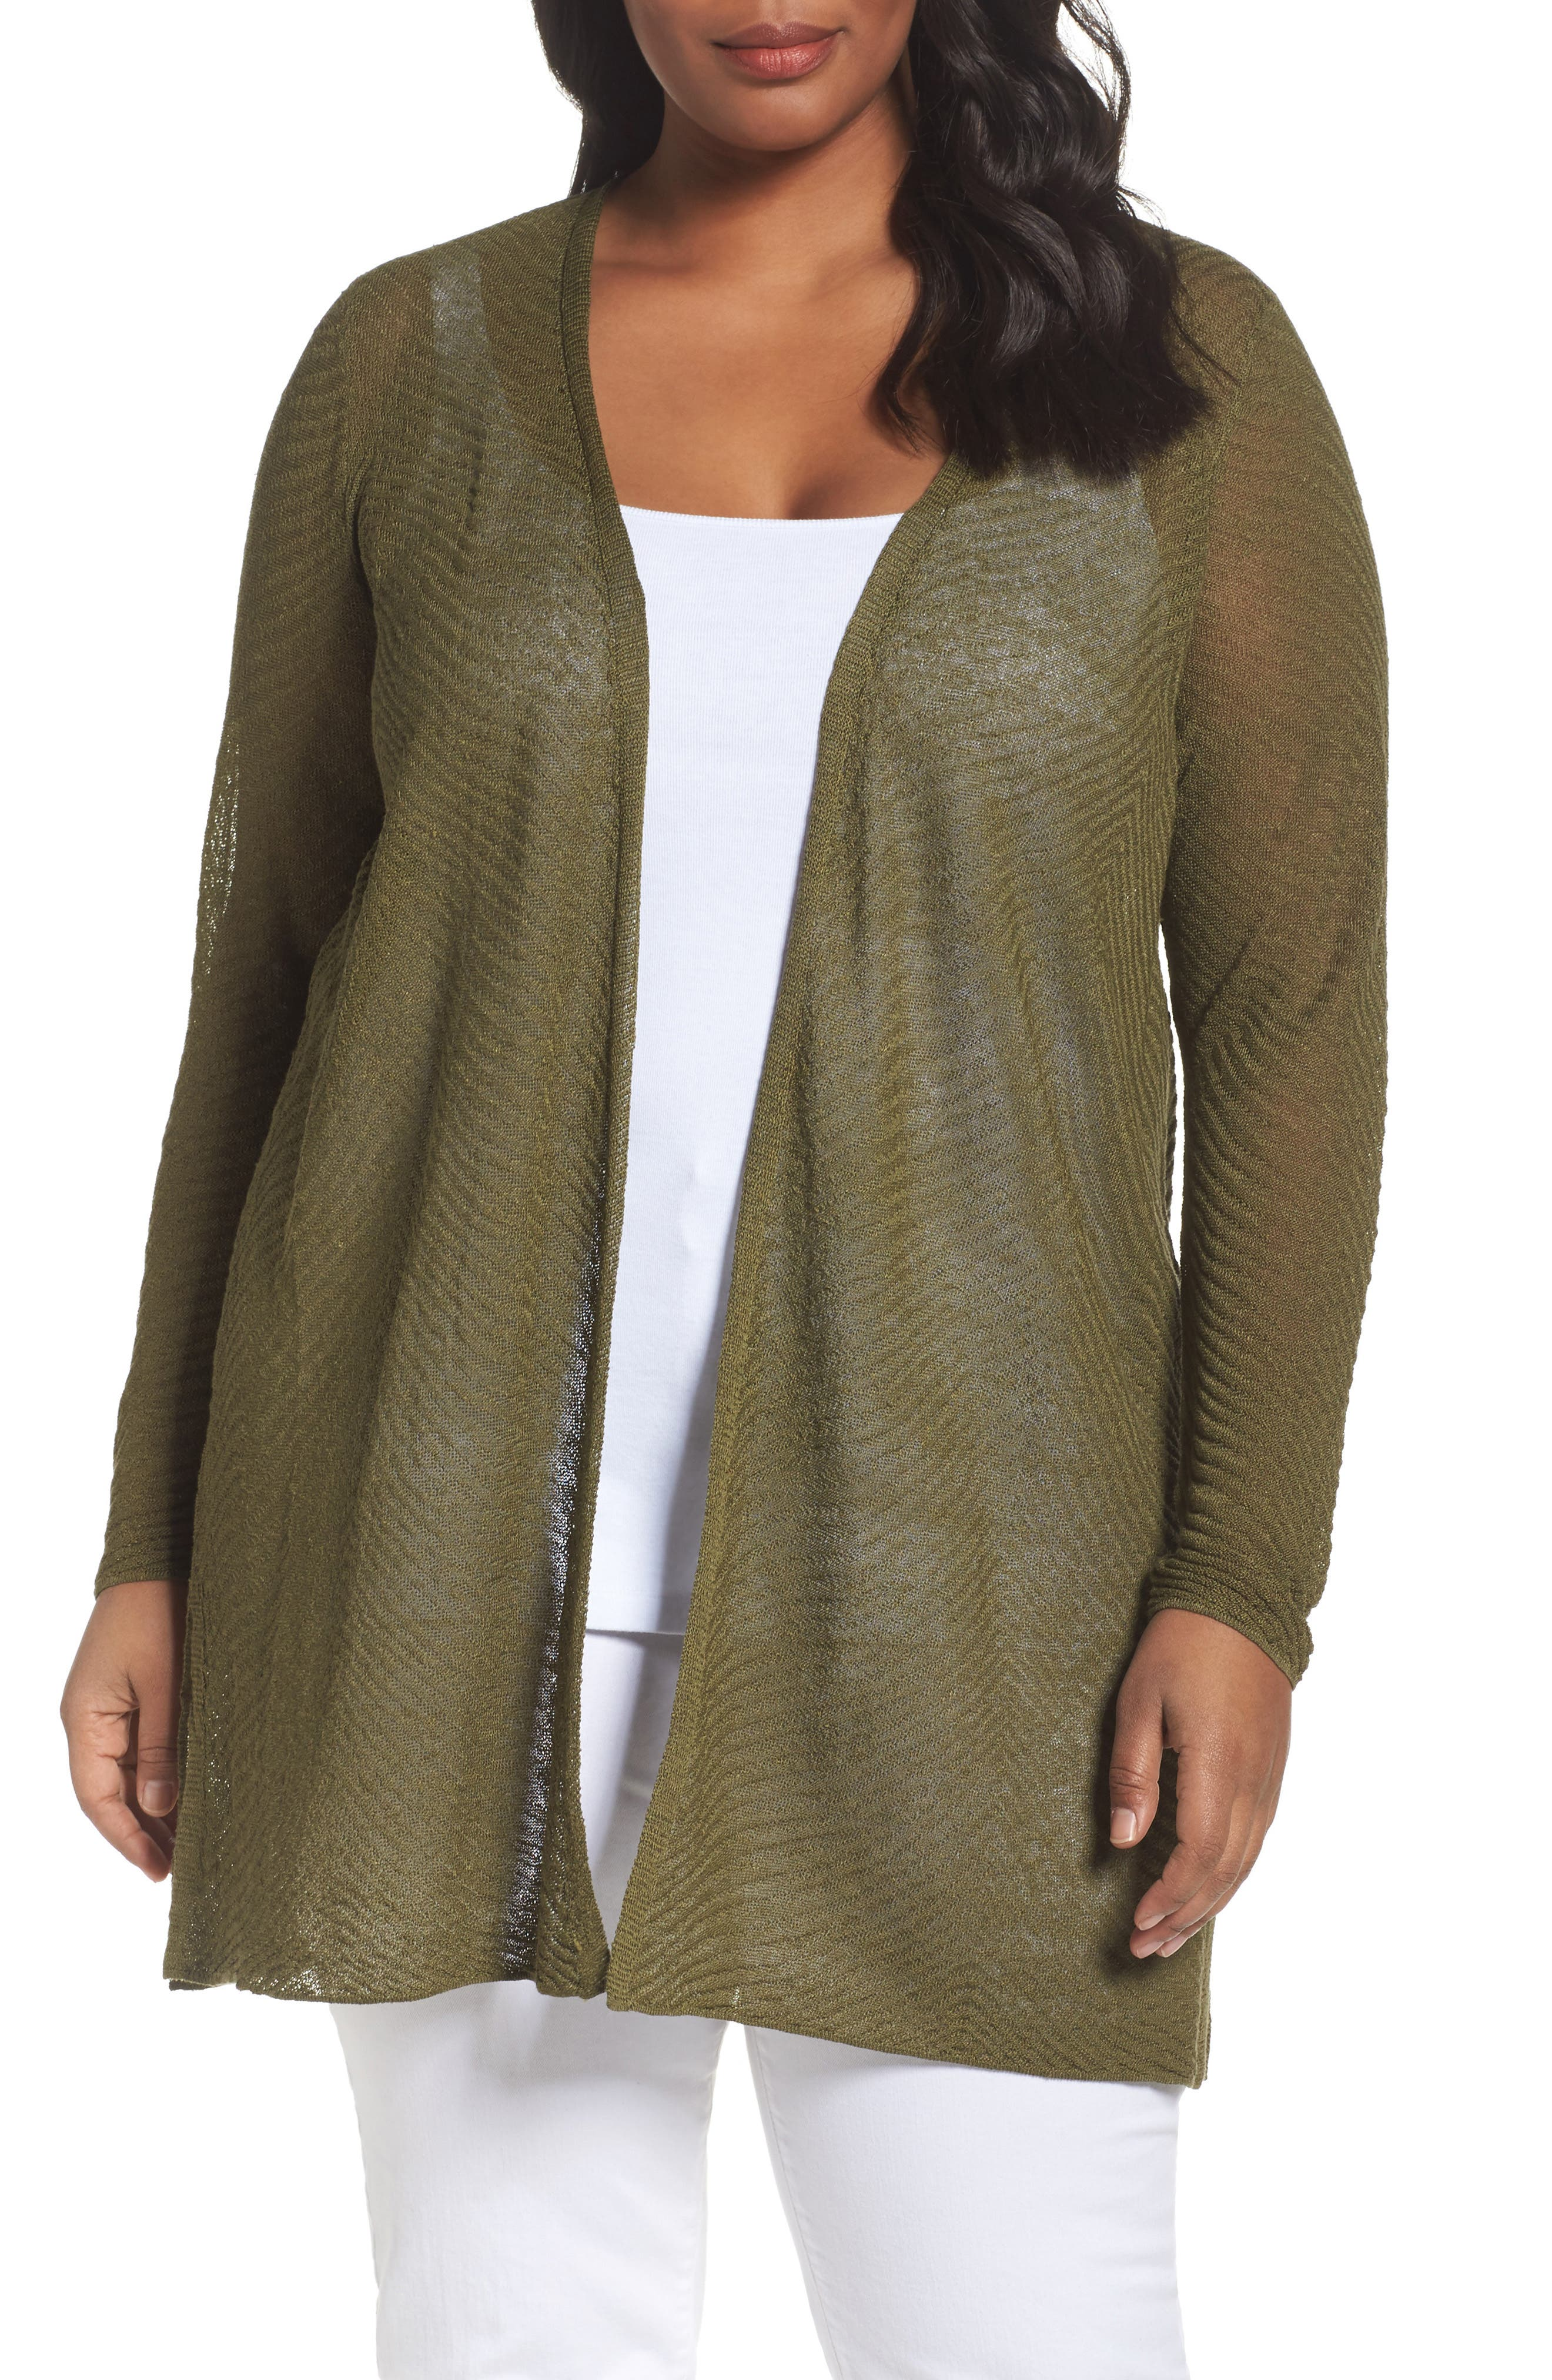 Eileen Fisher Hemp Blend Long Cardigan (Plus Size)